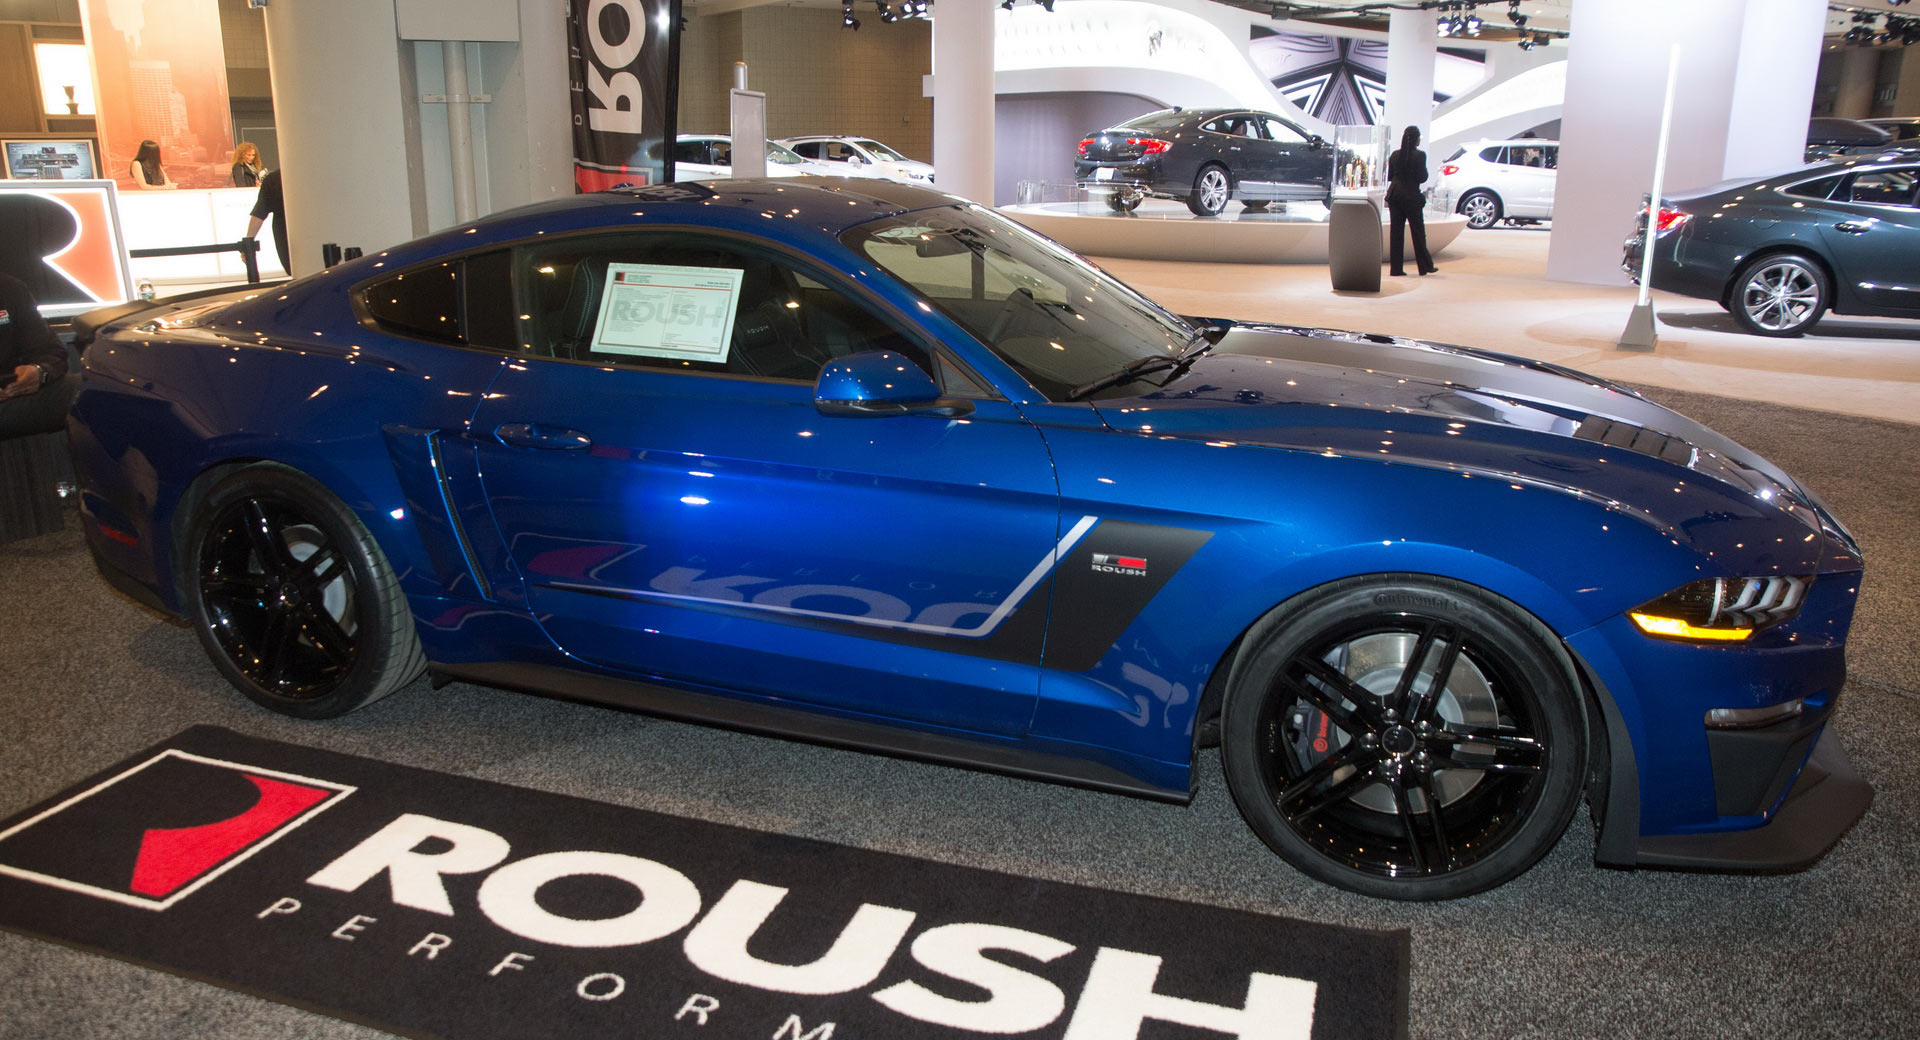 Roushs 2018 jackhammer is a 710 hp supercharged mustang carscoops